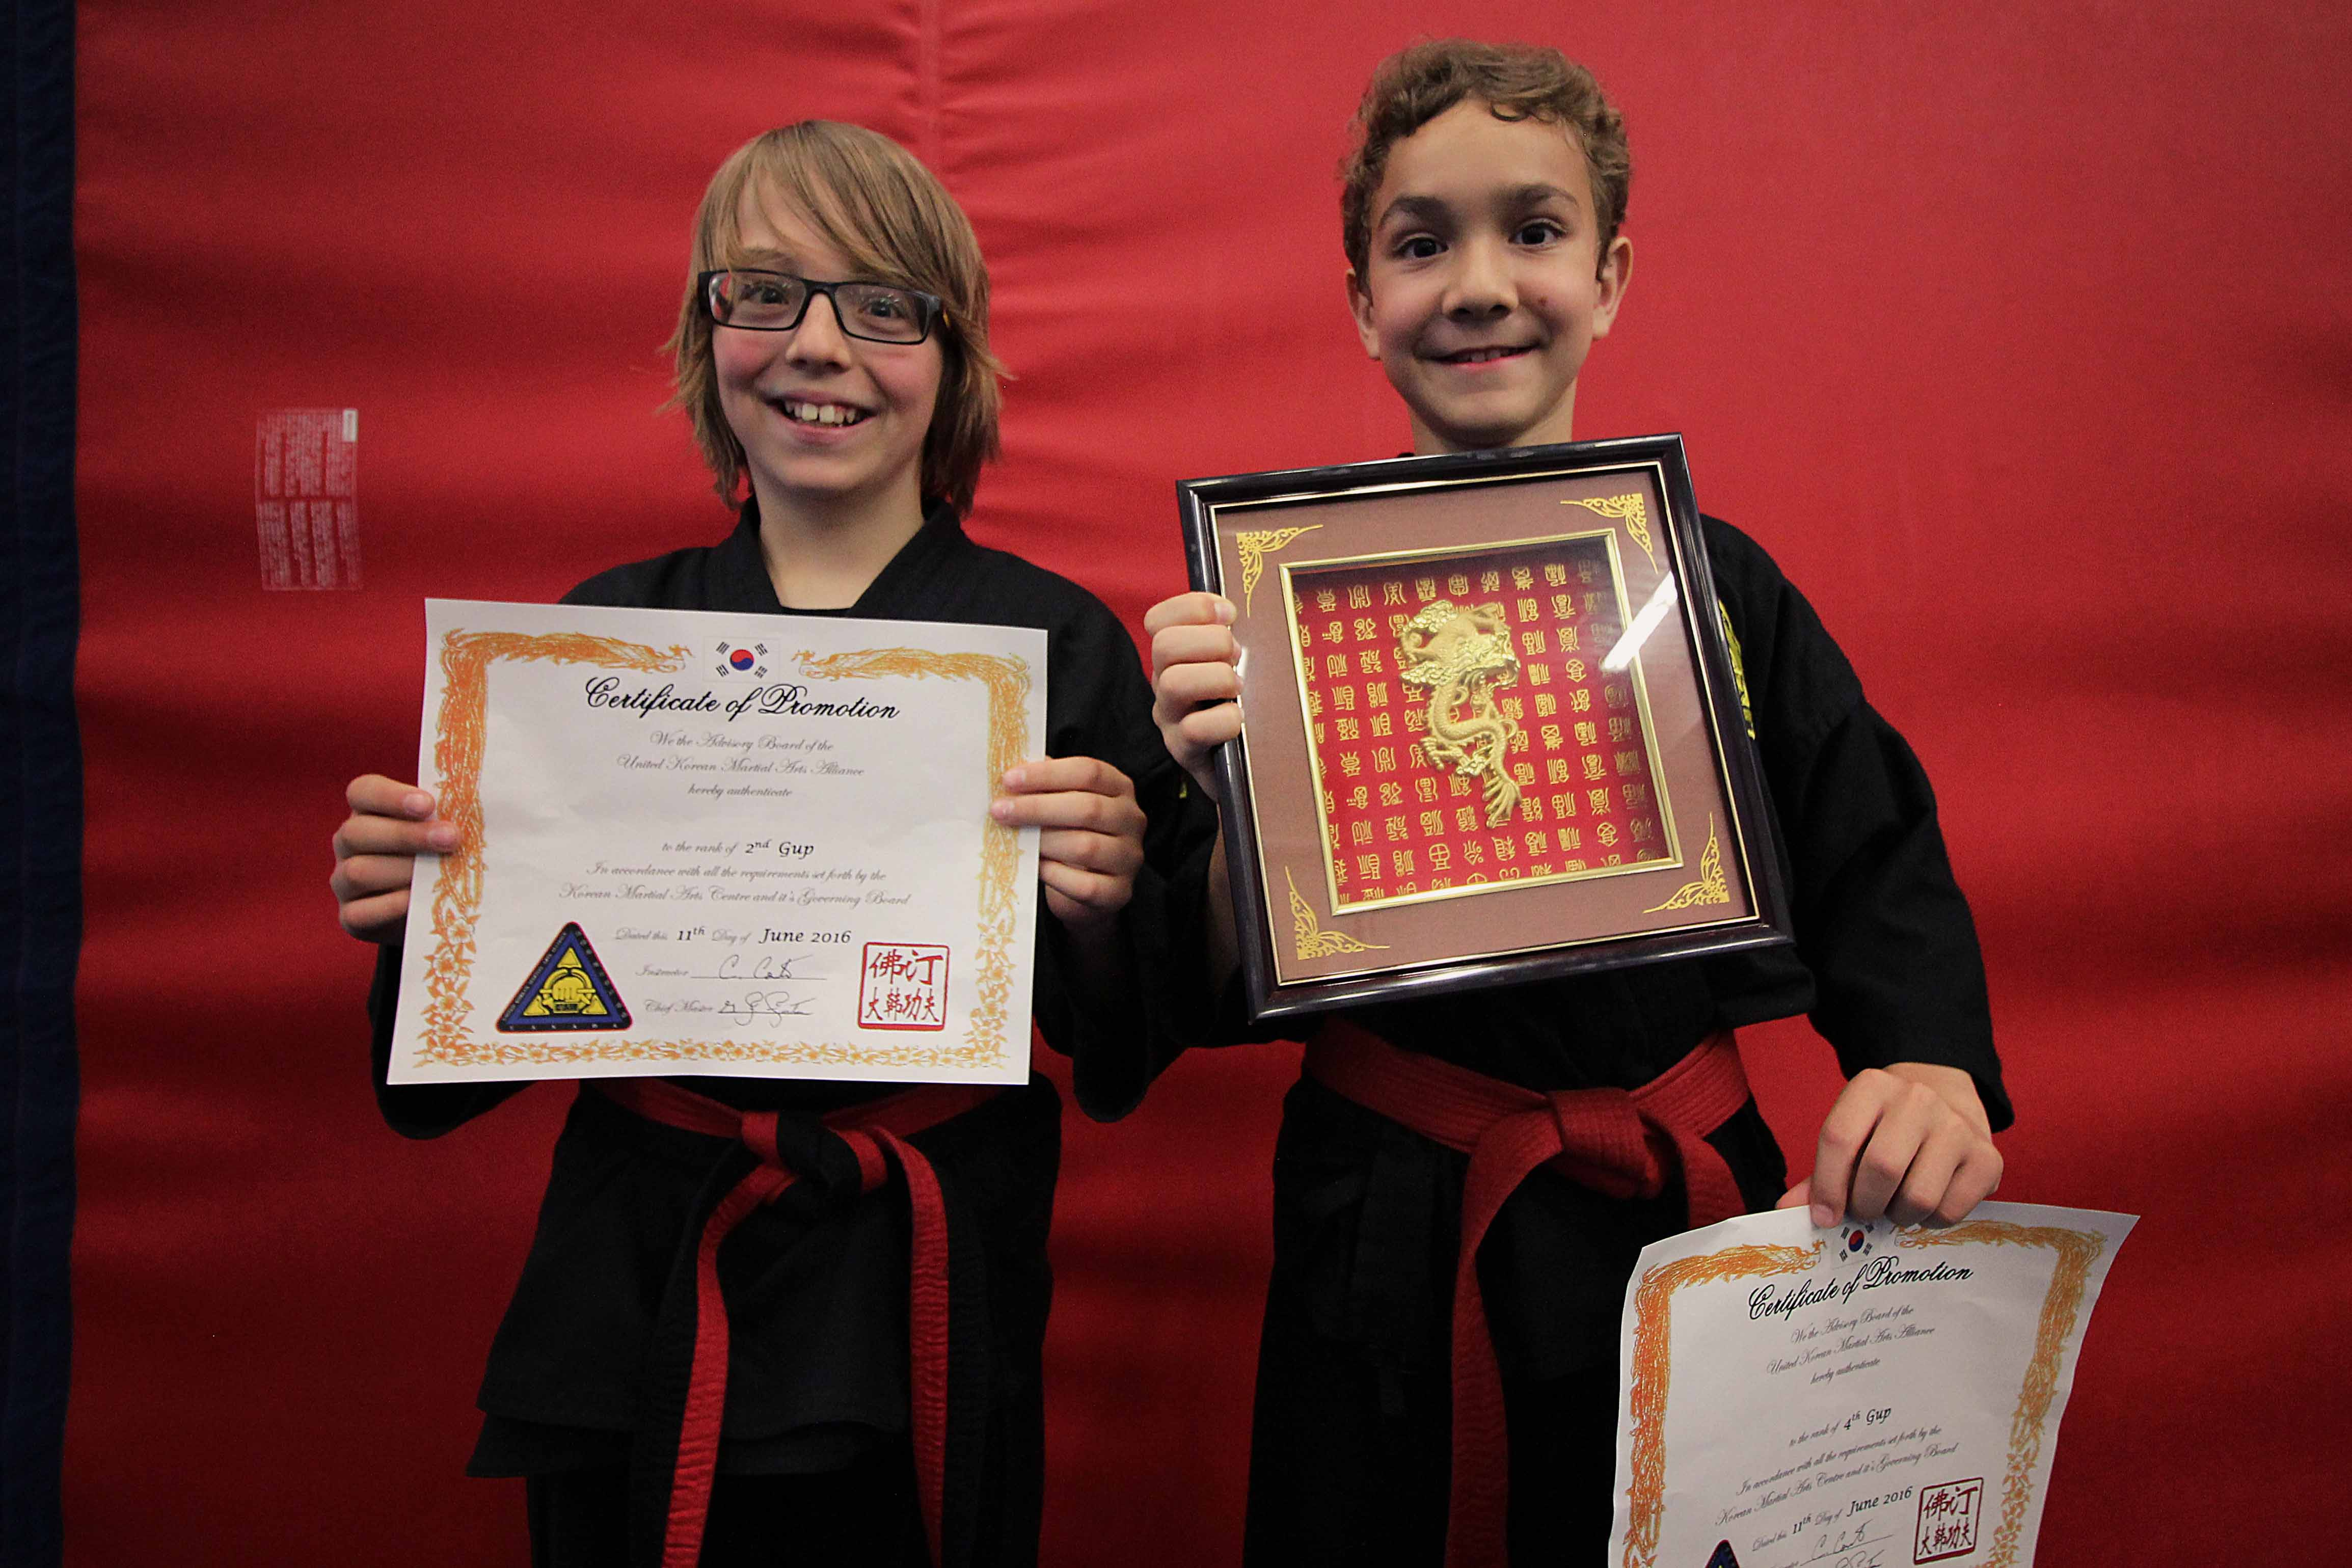 Two Valley KMAC students showing off their tournament awards and promotions.